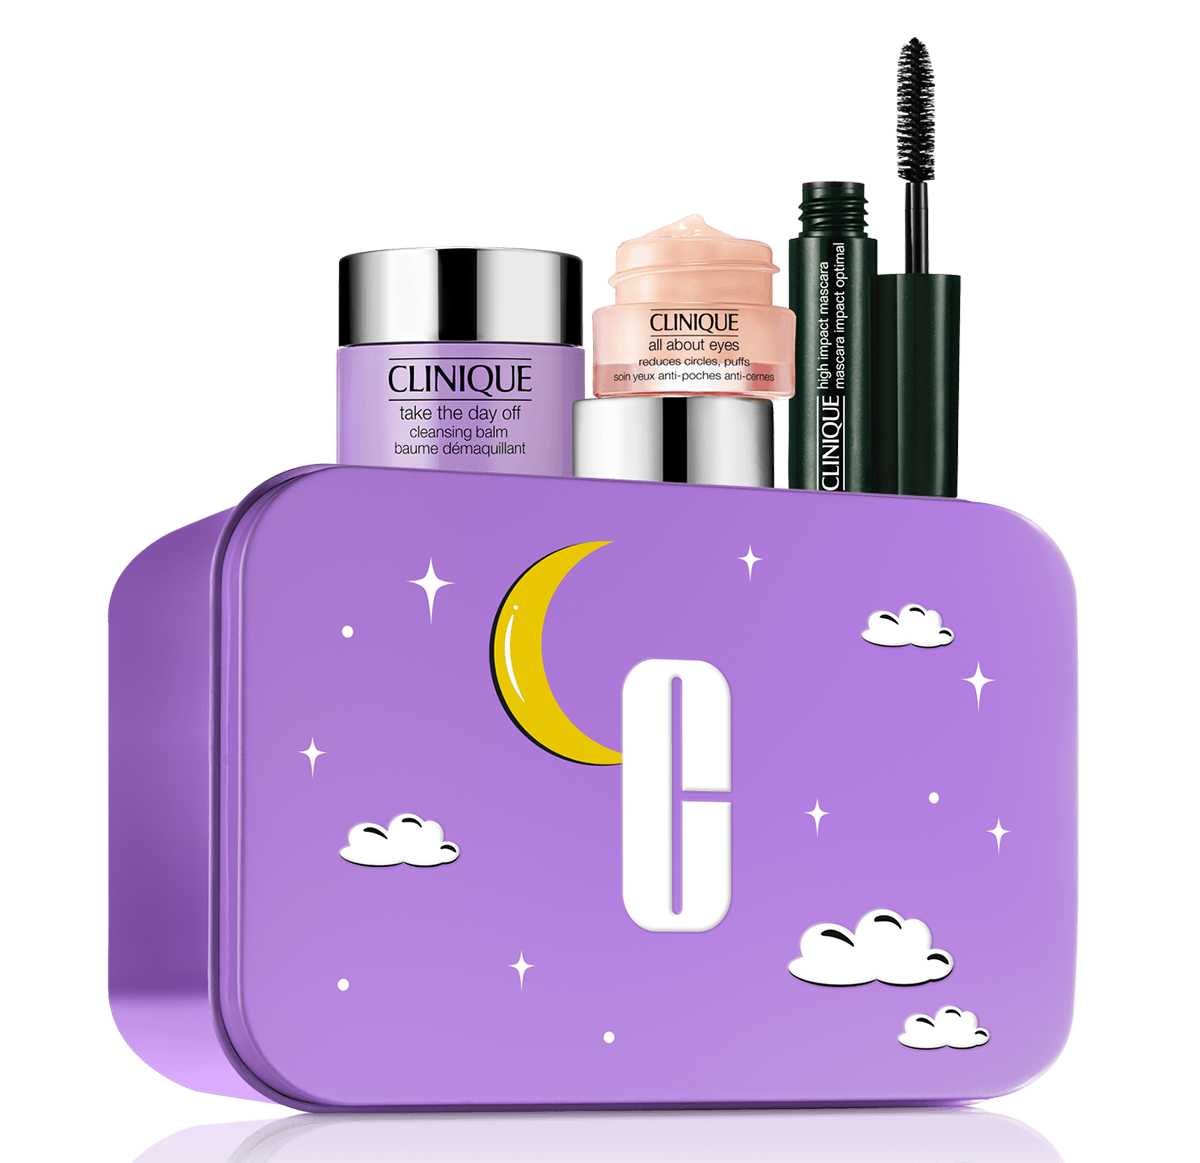 the purple tin with the mascara, eye balm, and cleansing balm